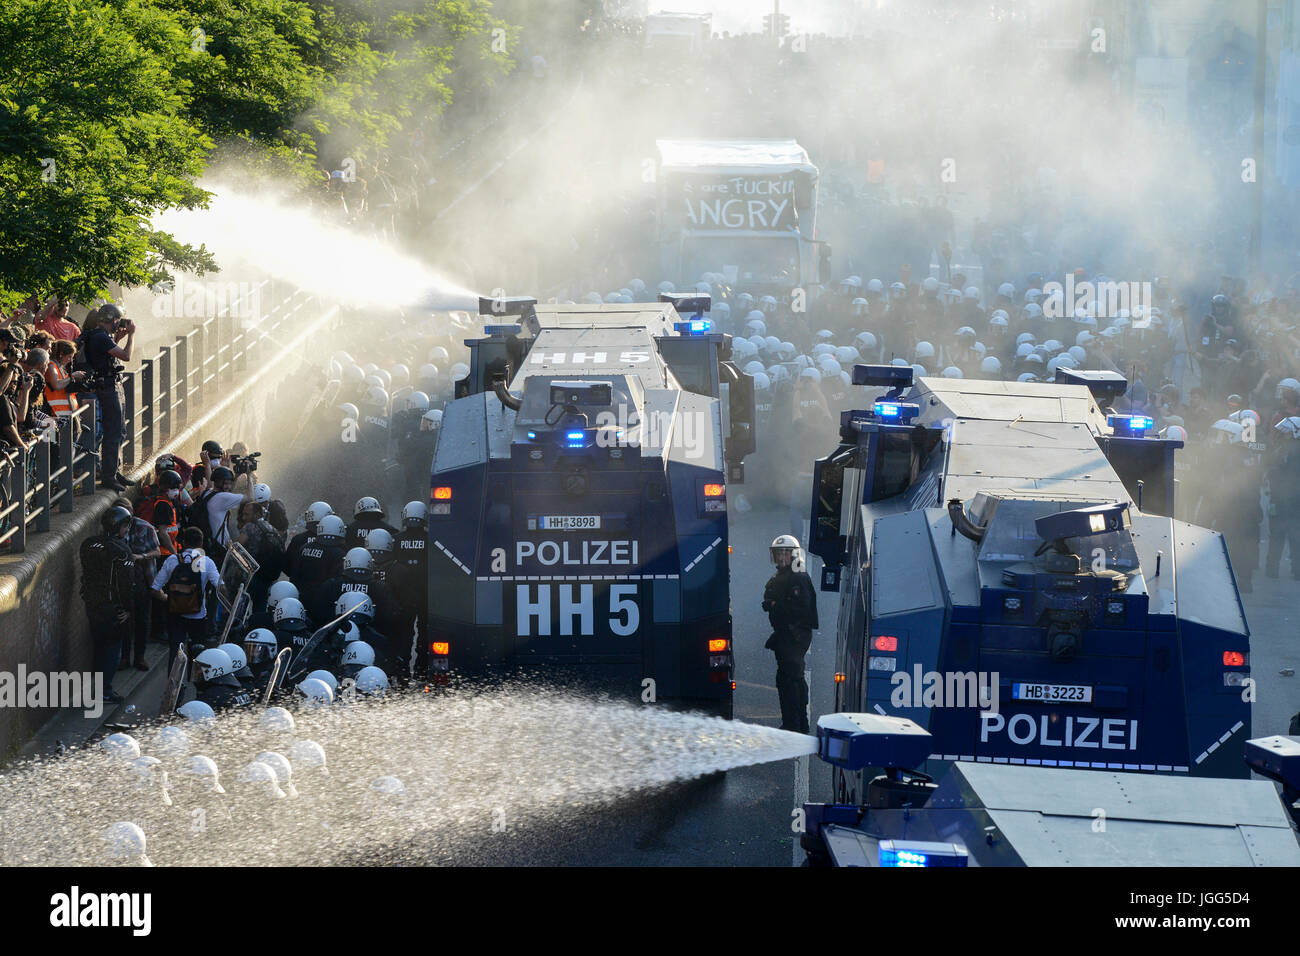 Hamburg, Germany. 6th July, 2017. protest rally 'G-20 WELCOME TO HELL' against G-20 summit , police actions - Stock Image